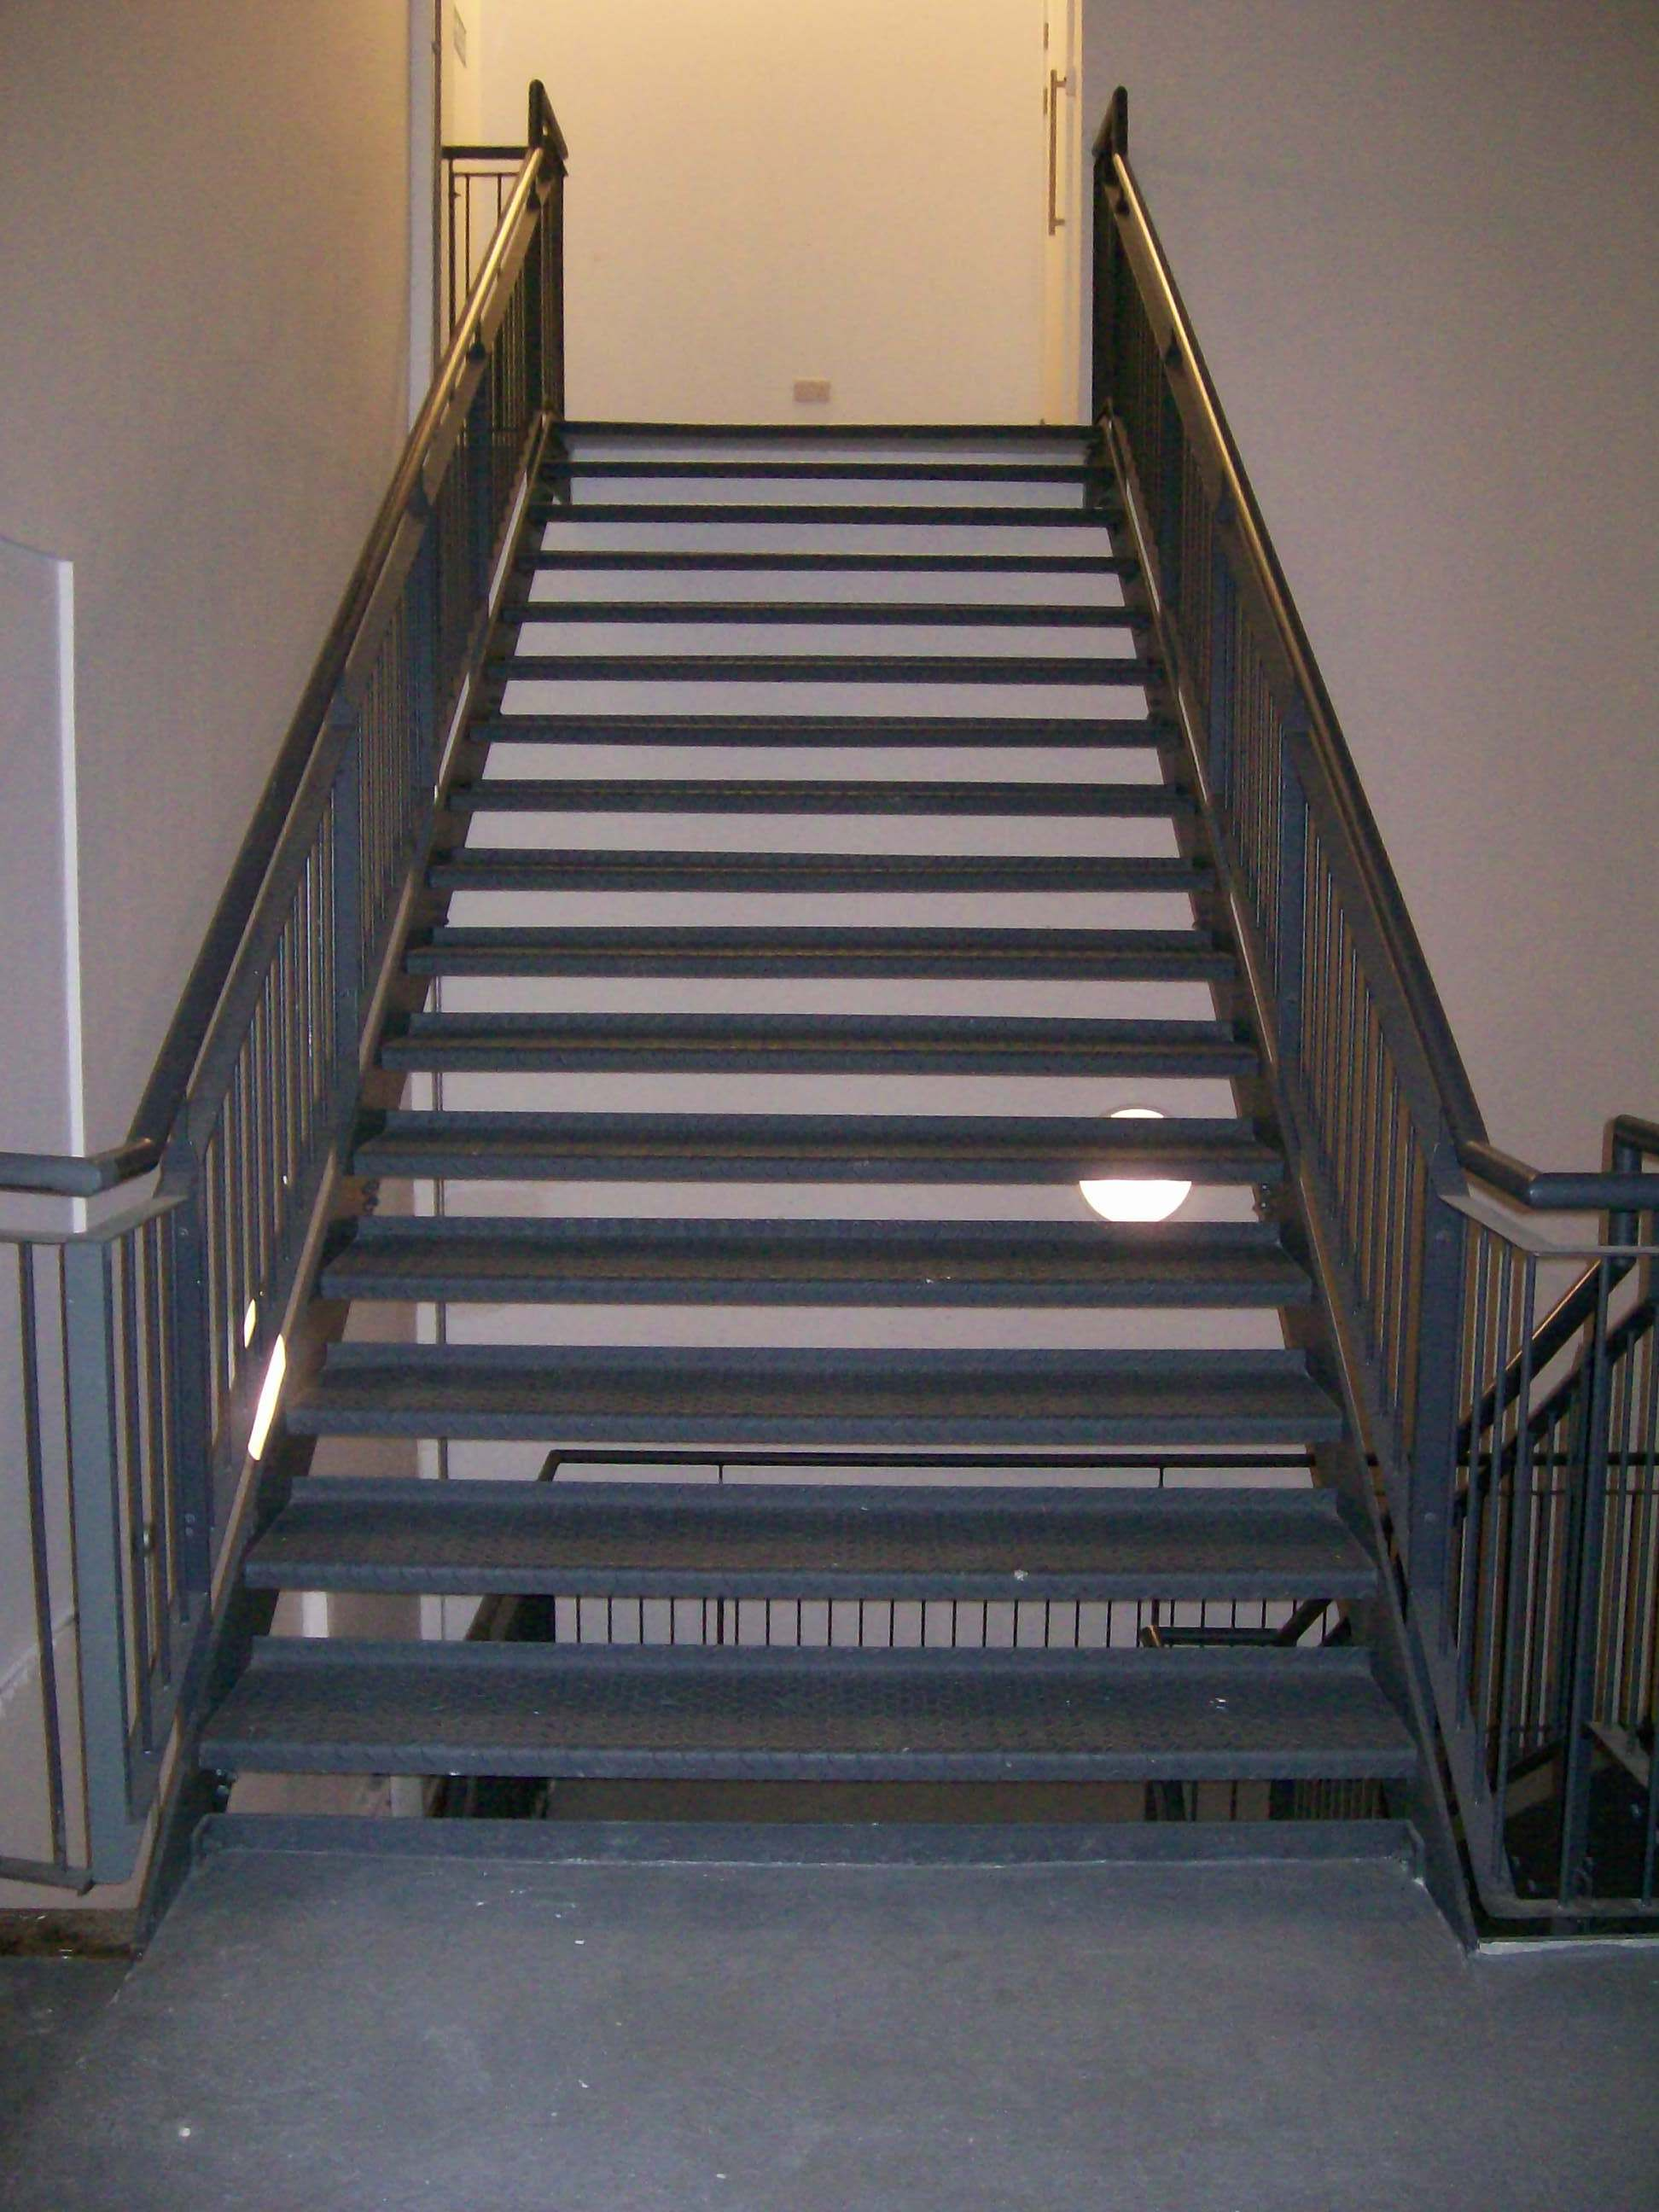 COMMERCIAL STAIRS #1. «